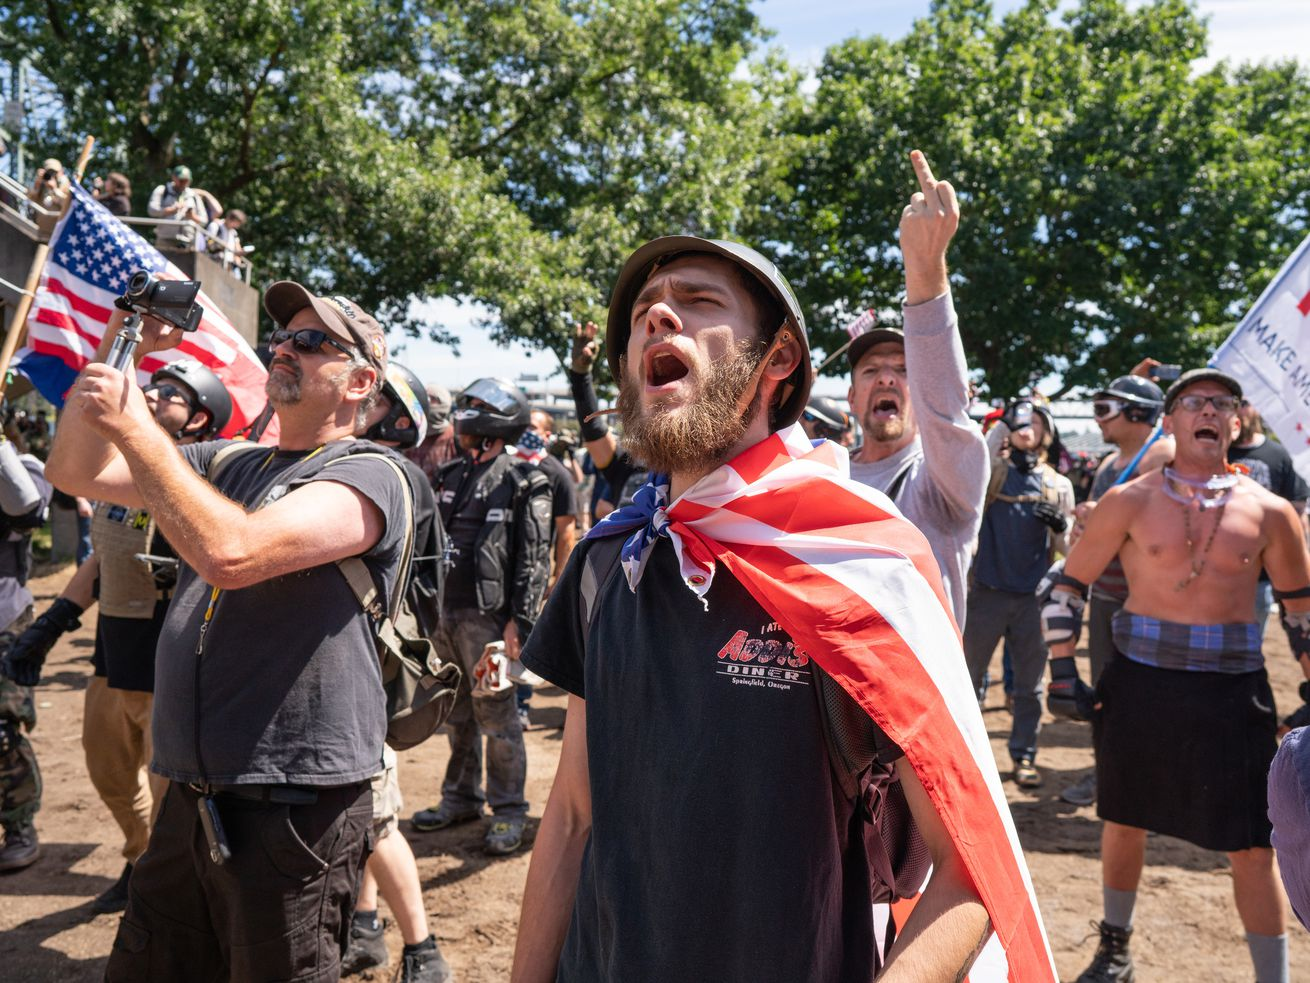 Far-right protesters jeer at members of Antifa during protests organized by the far-right group the Proud Boys.